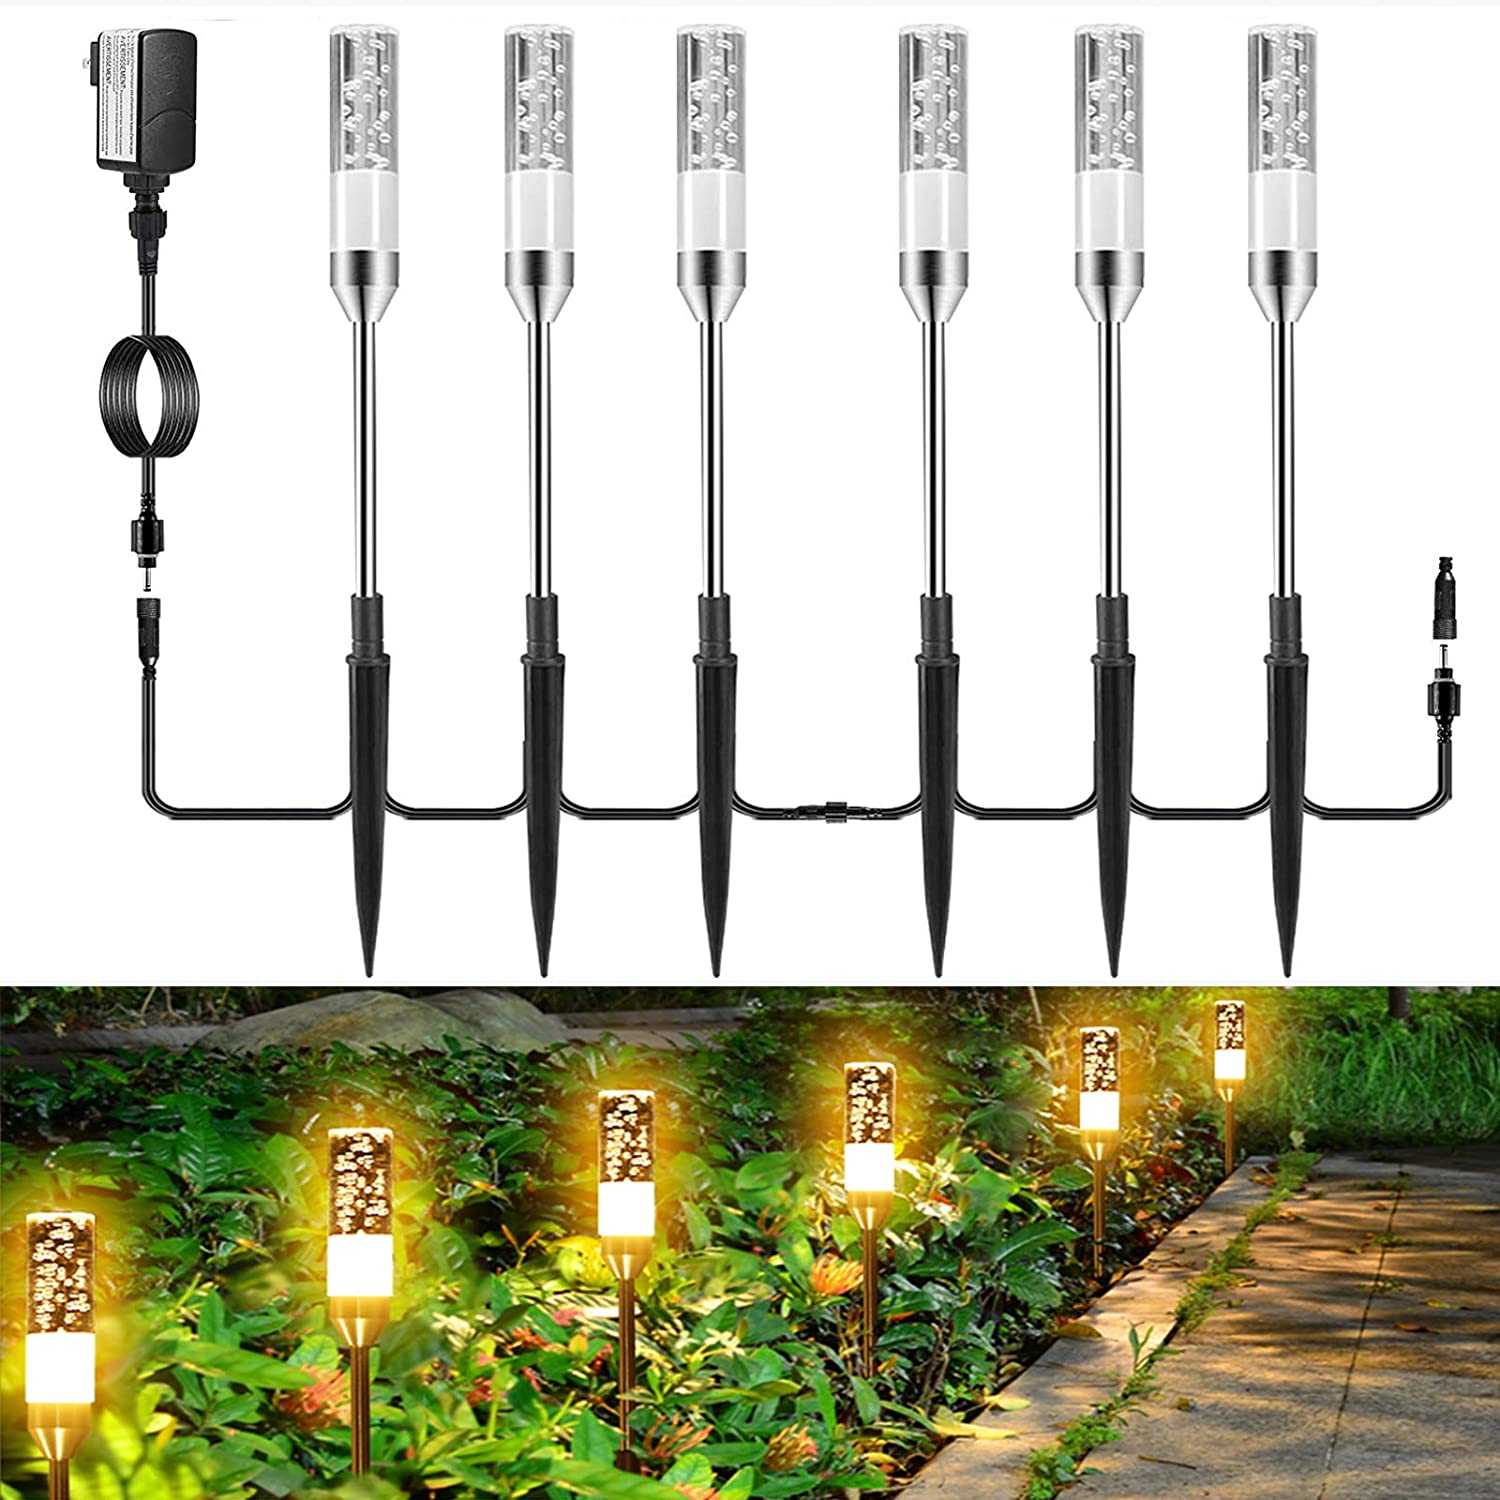 GreenClick LED Path Lights, 6 Pack 3W Extendable Pathway Lights 12V Low Voltage Landscape Lighting Plug in IP65 Waterproof Acrylic Bubble Outdoor Garden Lights for Lawn Patio Yard, 2700K